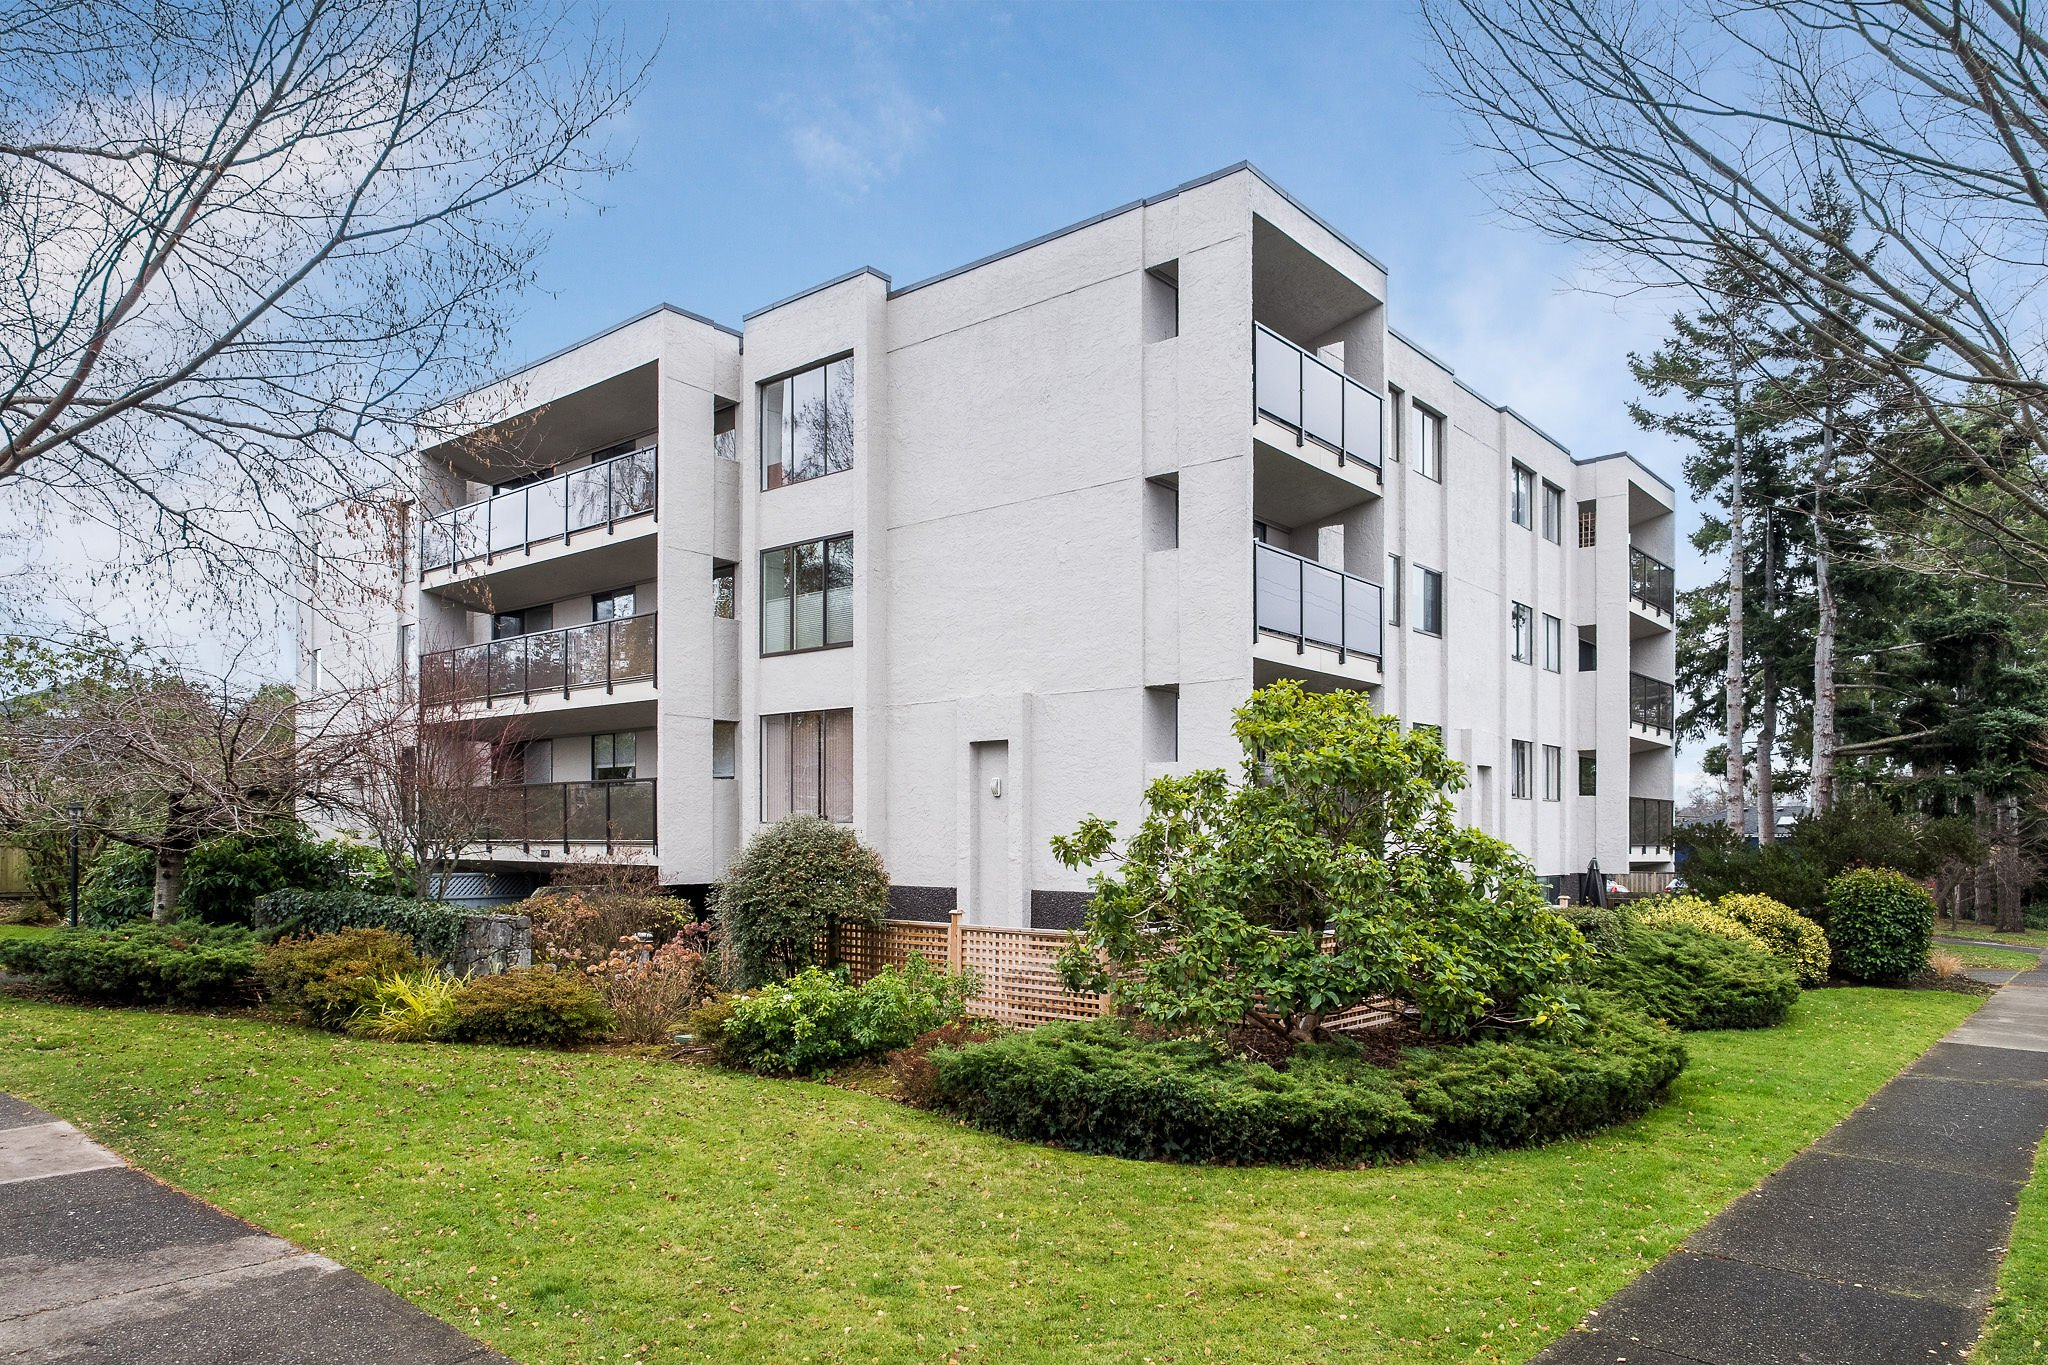 Main Photo: 205 1151 Oscar Street in VICTORIA: Vi Fairfield West Condo Apartment for sale (Victoria)  : MLS®# 419382